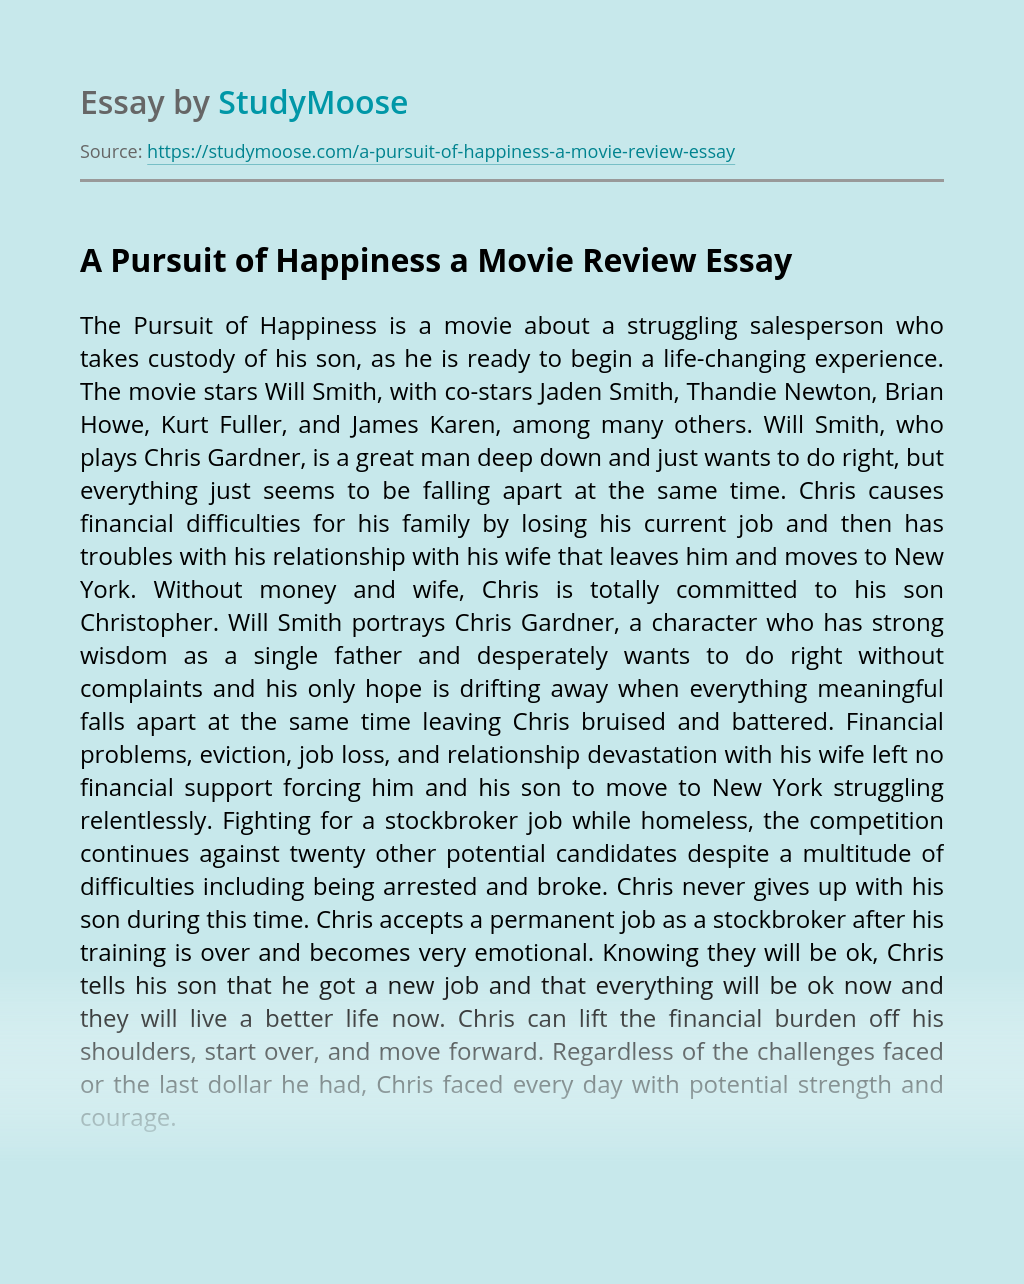 A Pursuit of Happiness a Movie Review